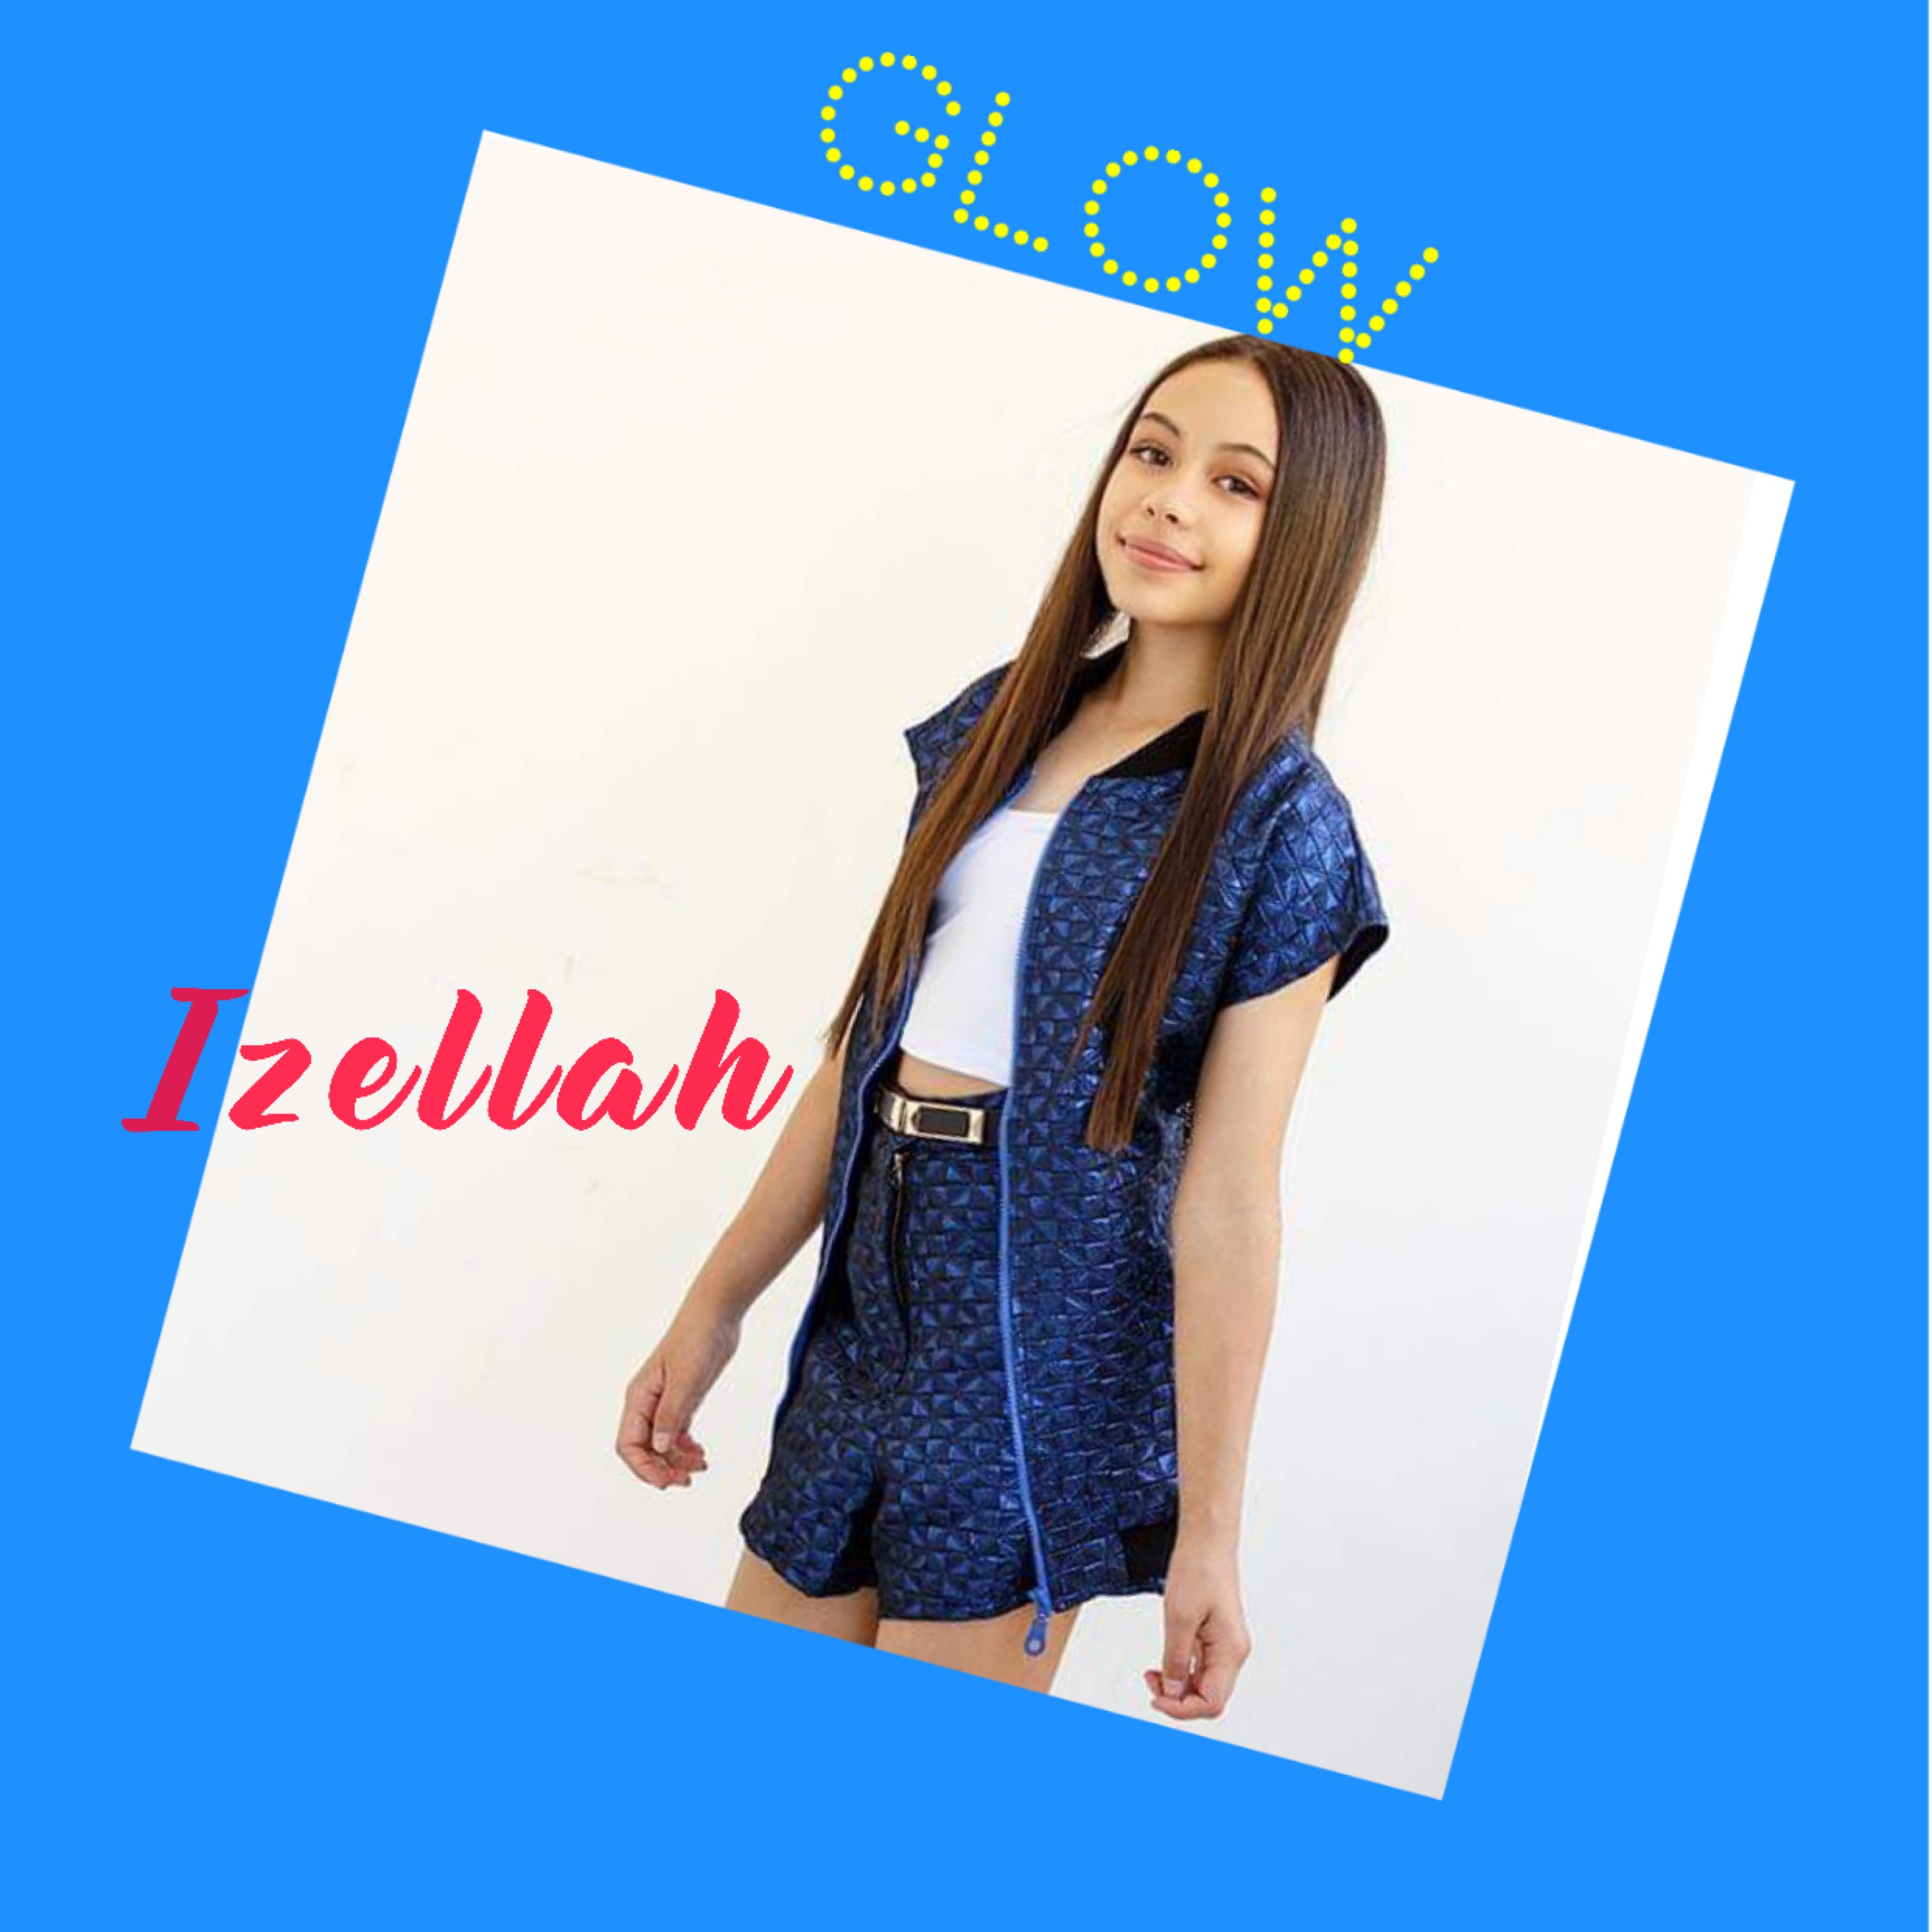 IZELLAH – Glowing Release